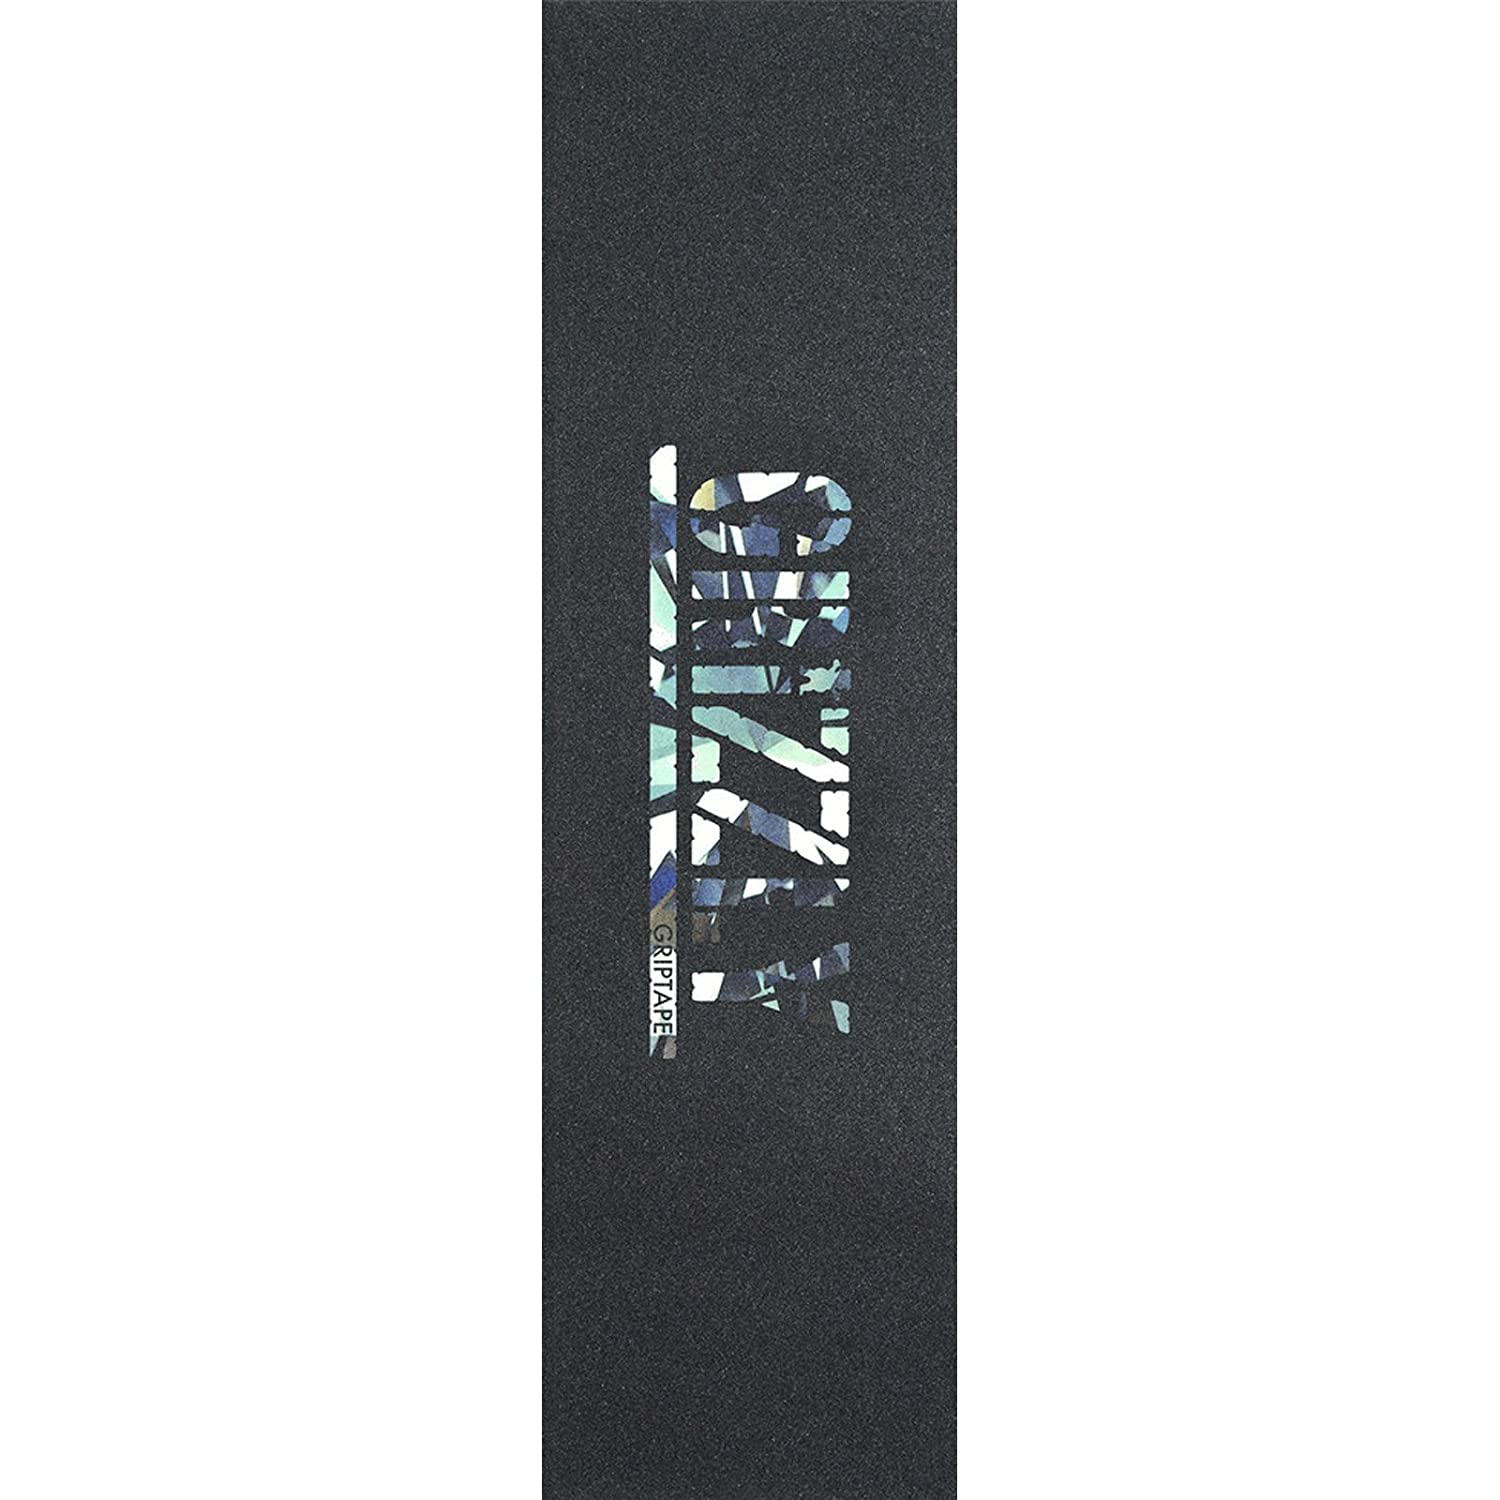 Grizzly Single Grizzly Sheet Simplicity Simplicity GRIPTAPE by B01BNZLQR6 Grizzly Grip Tape B01BNZLQR6, ゴルフシティアルド:02ad13be --- ero-shop-kupidon.ru